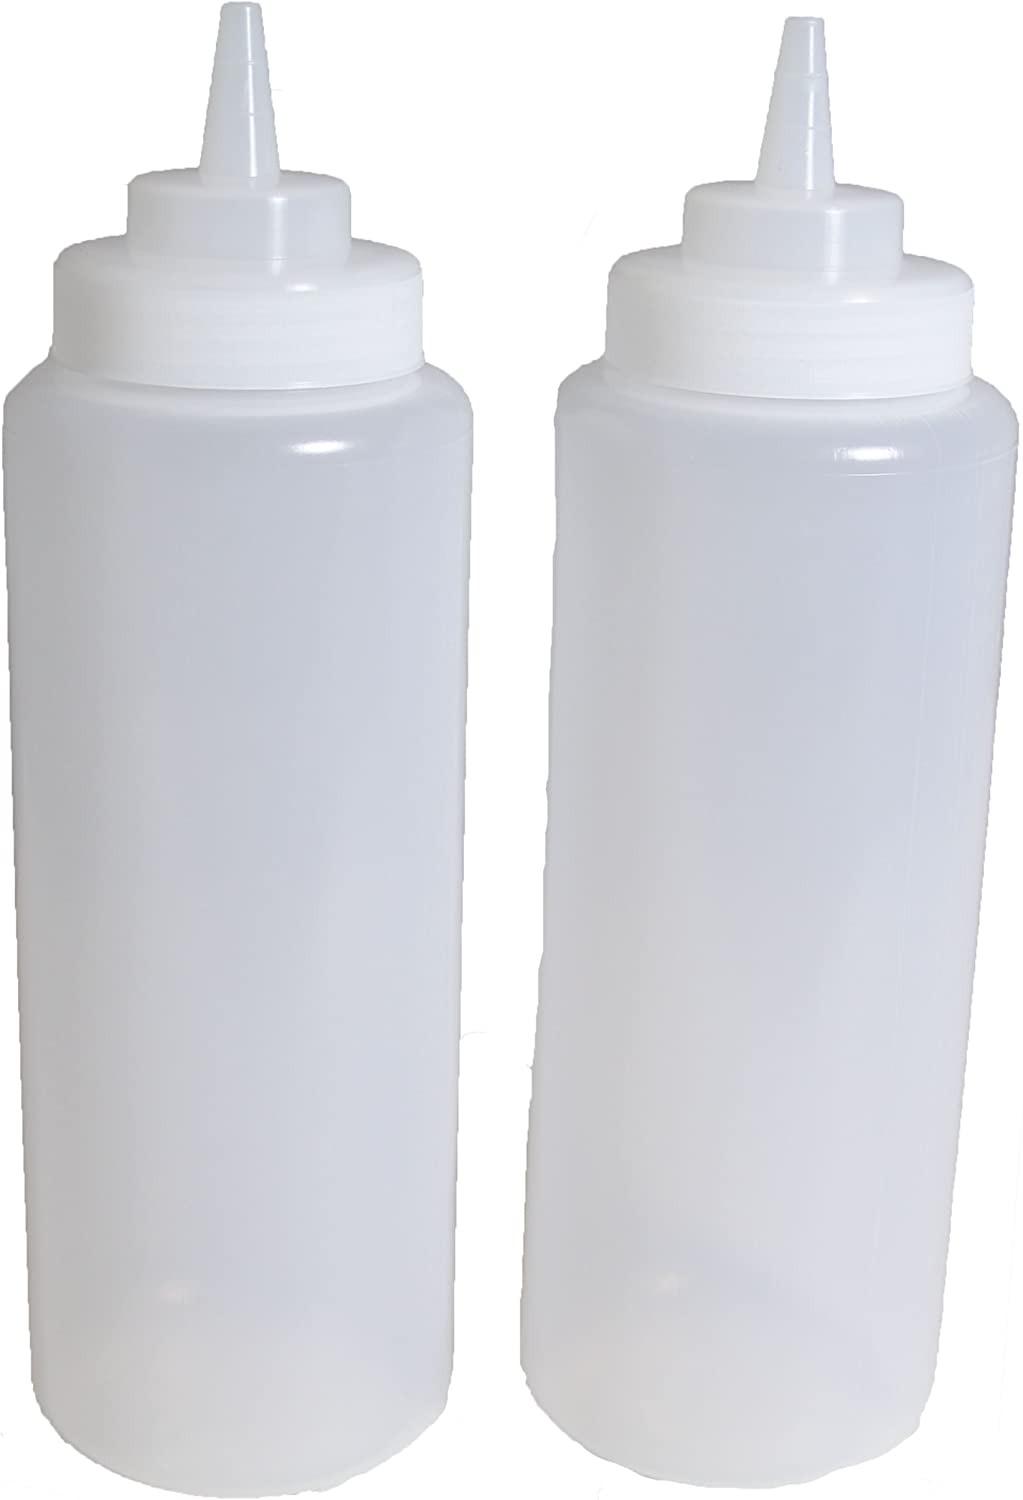 Max 81% OFF Max 77% OFF SET of 3 32 Oz. Ounce Clear Squeeze Condiment Bottle S Large